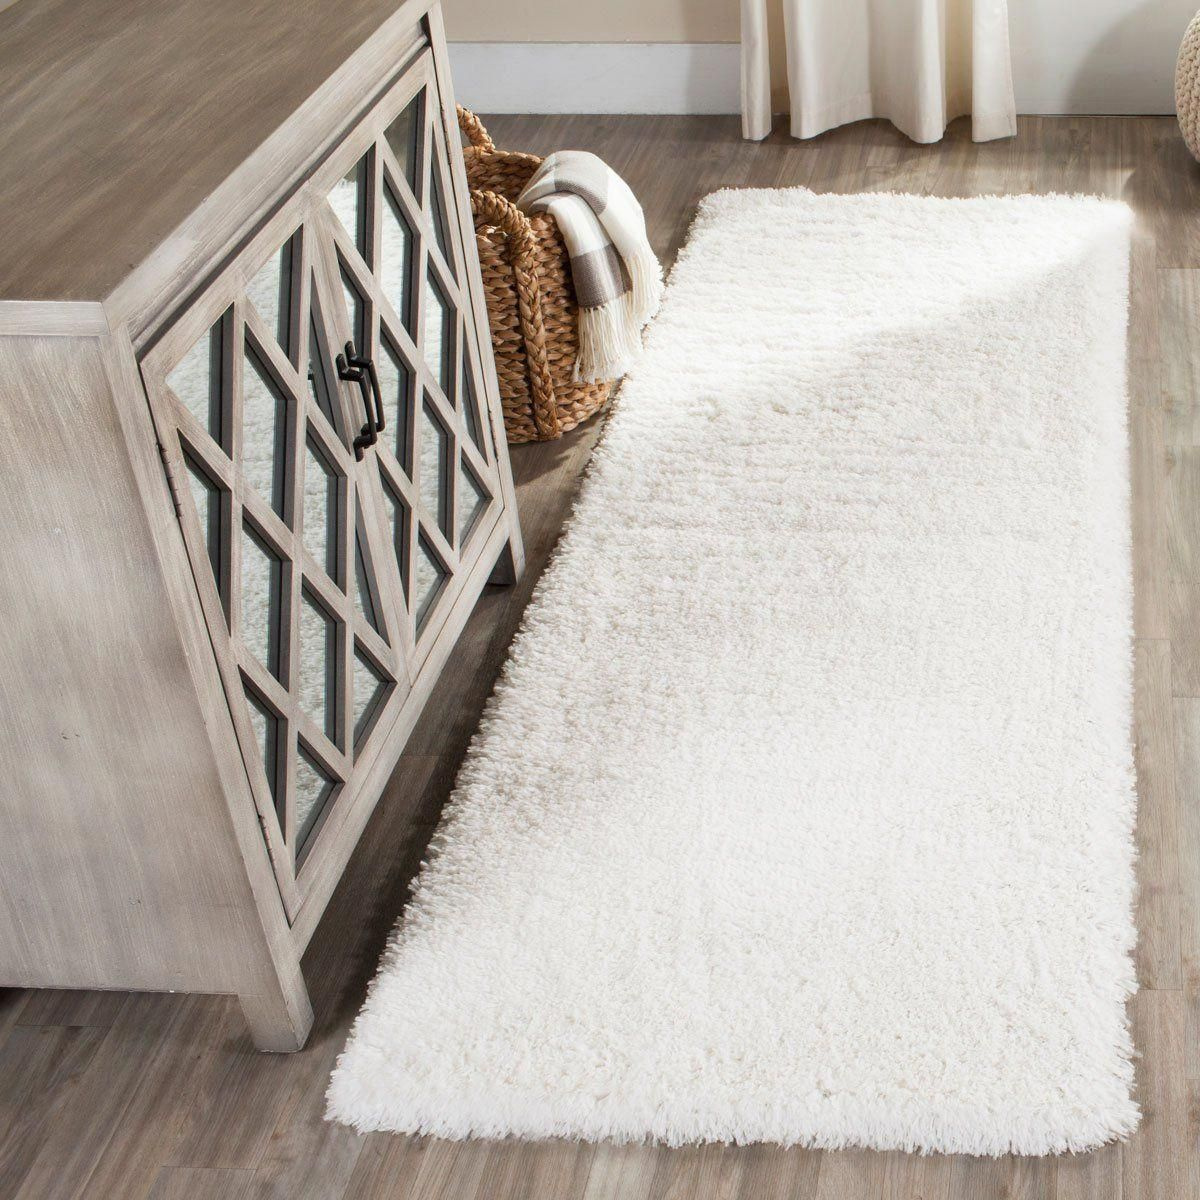 Carpet Runners For Stairs Lowes Runnerrugs Area Rugs Beige Area Rugs Plush Area Rugs